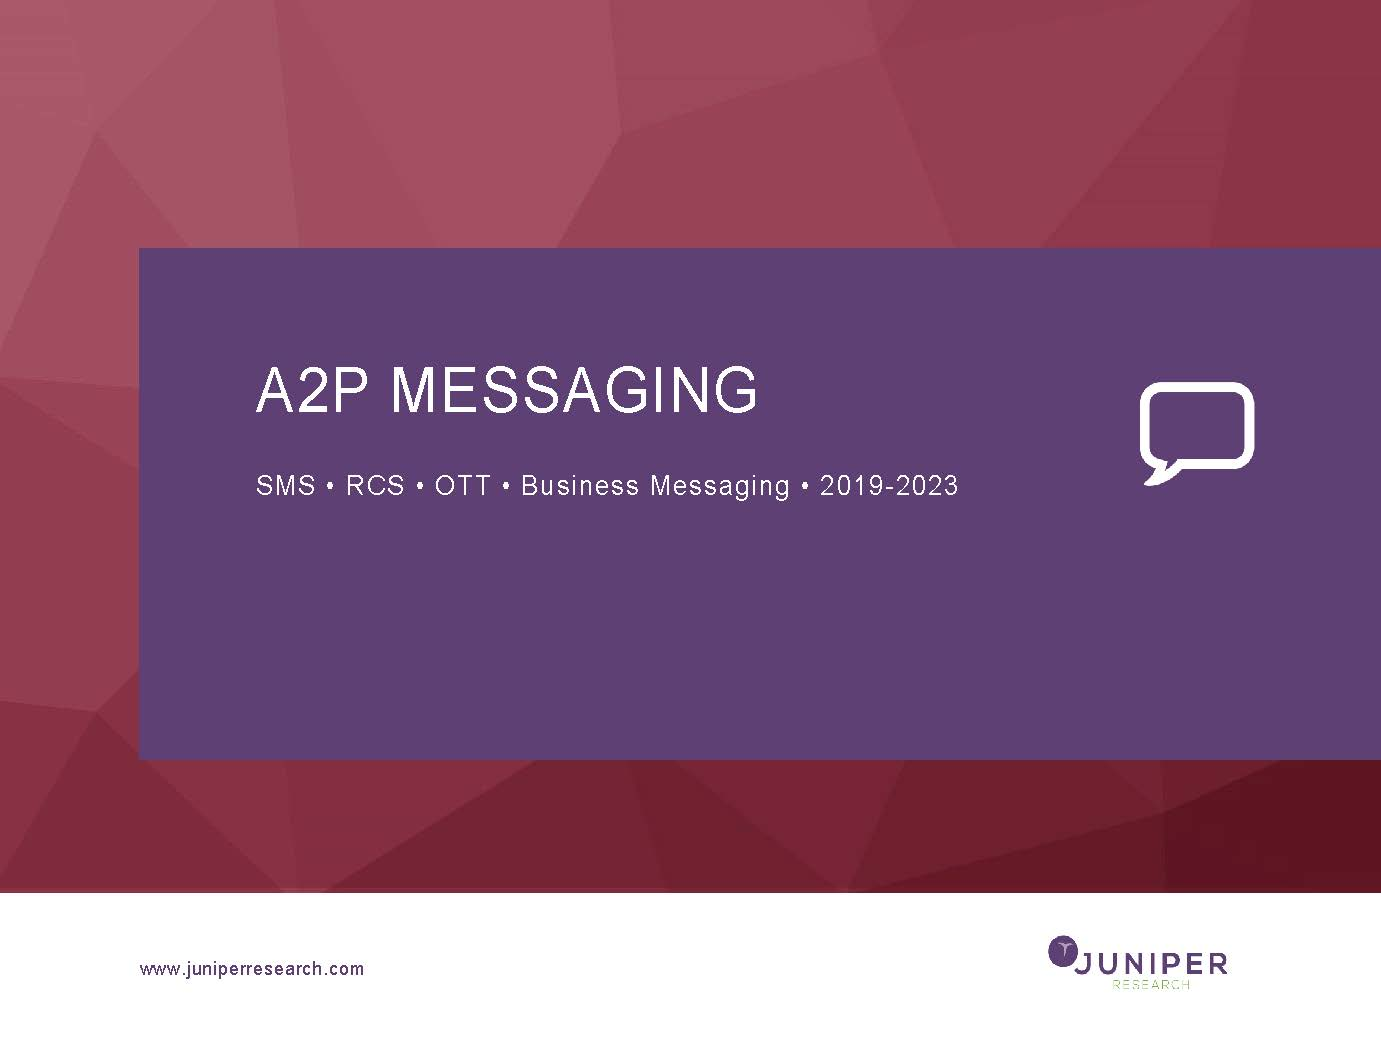 A2P Messaging